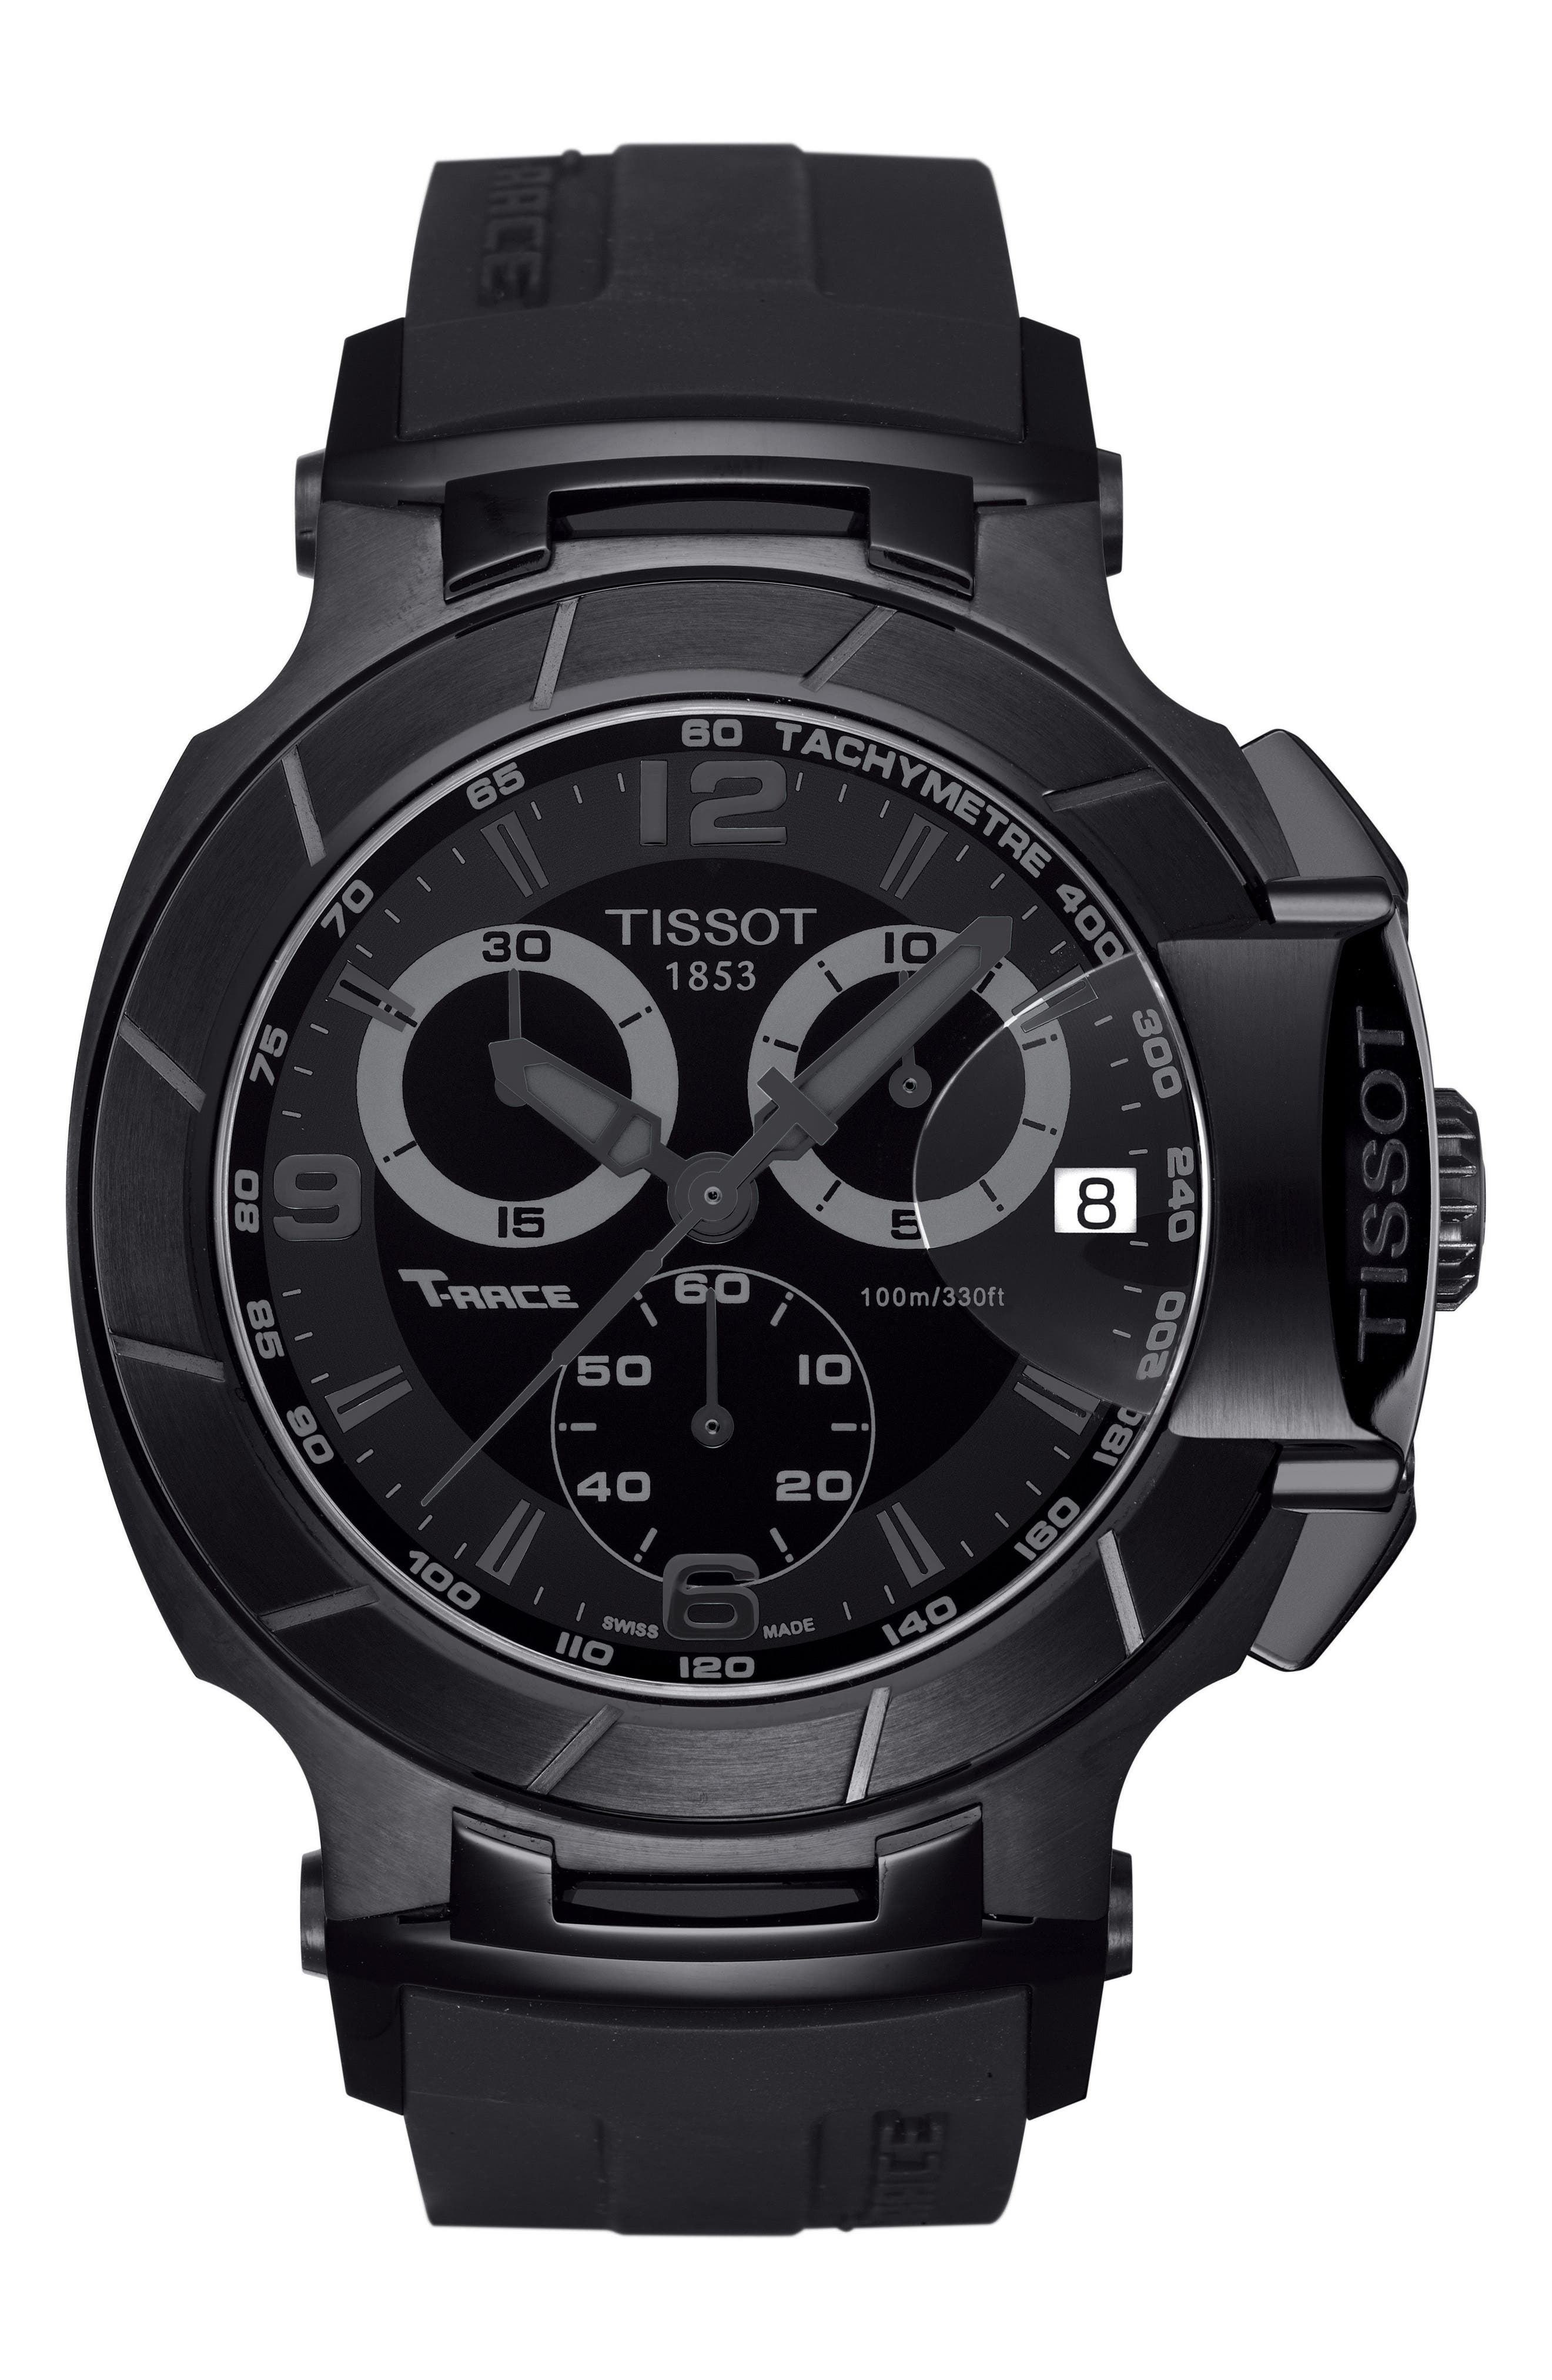 Main Image - Tissot T-Race Chronograph Silicone Strap Watch, 50mm